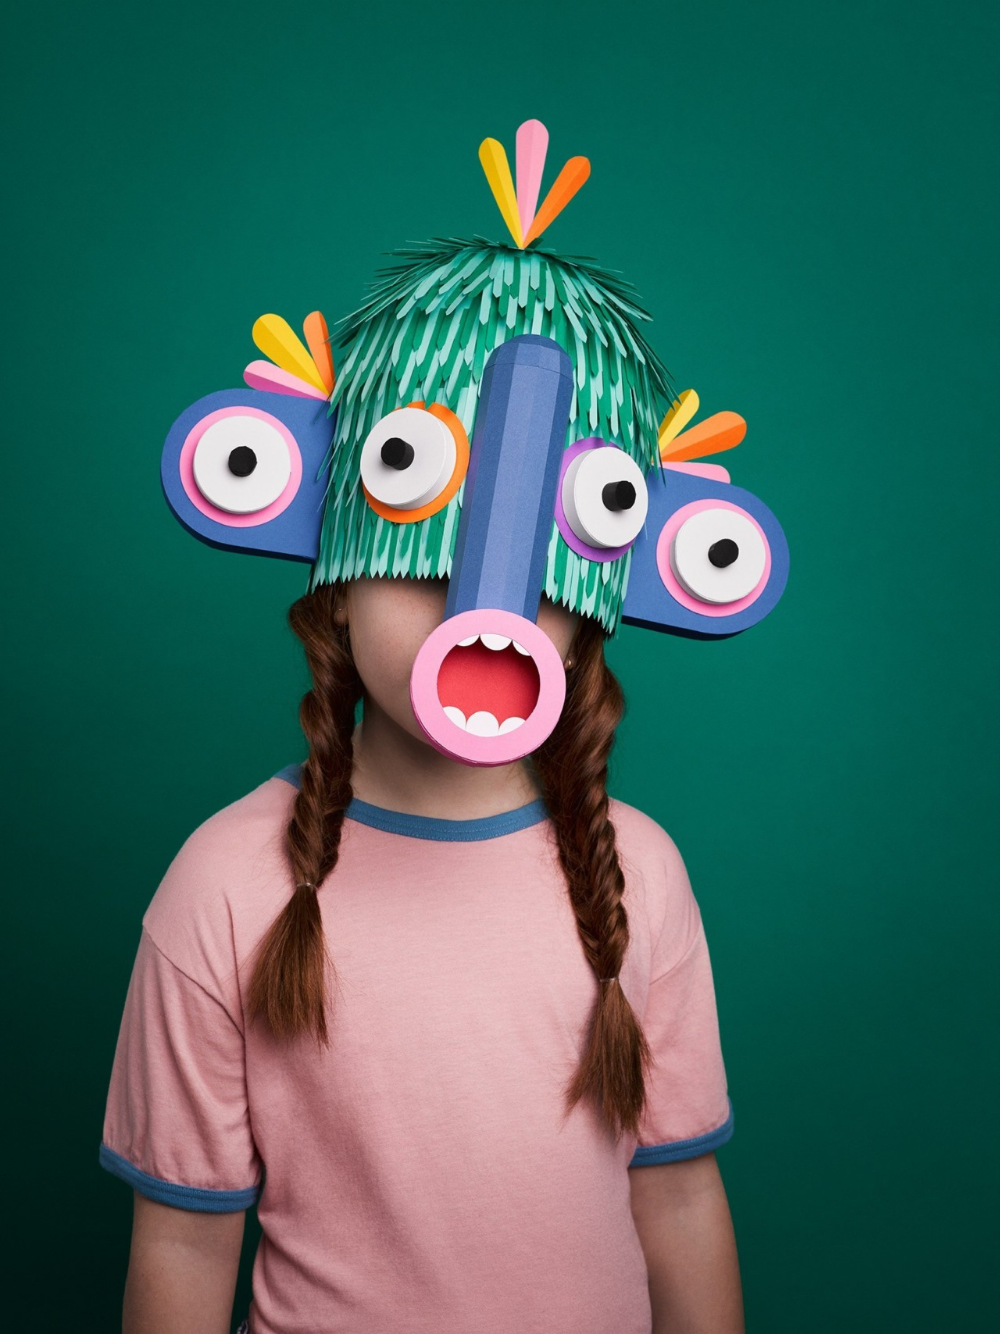 Playful Paper Masks by Lobulo Studio for Barcelona